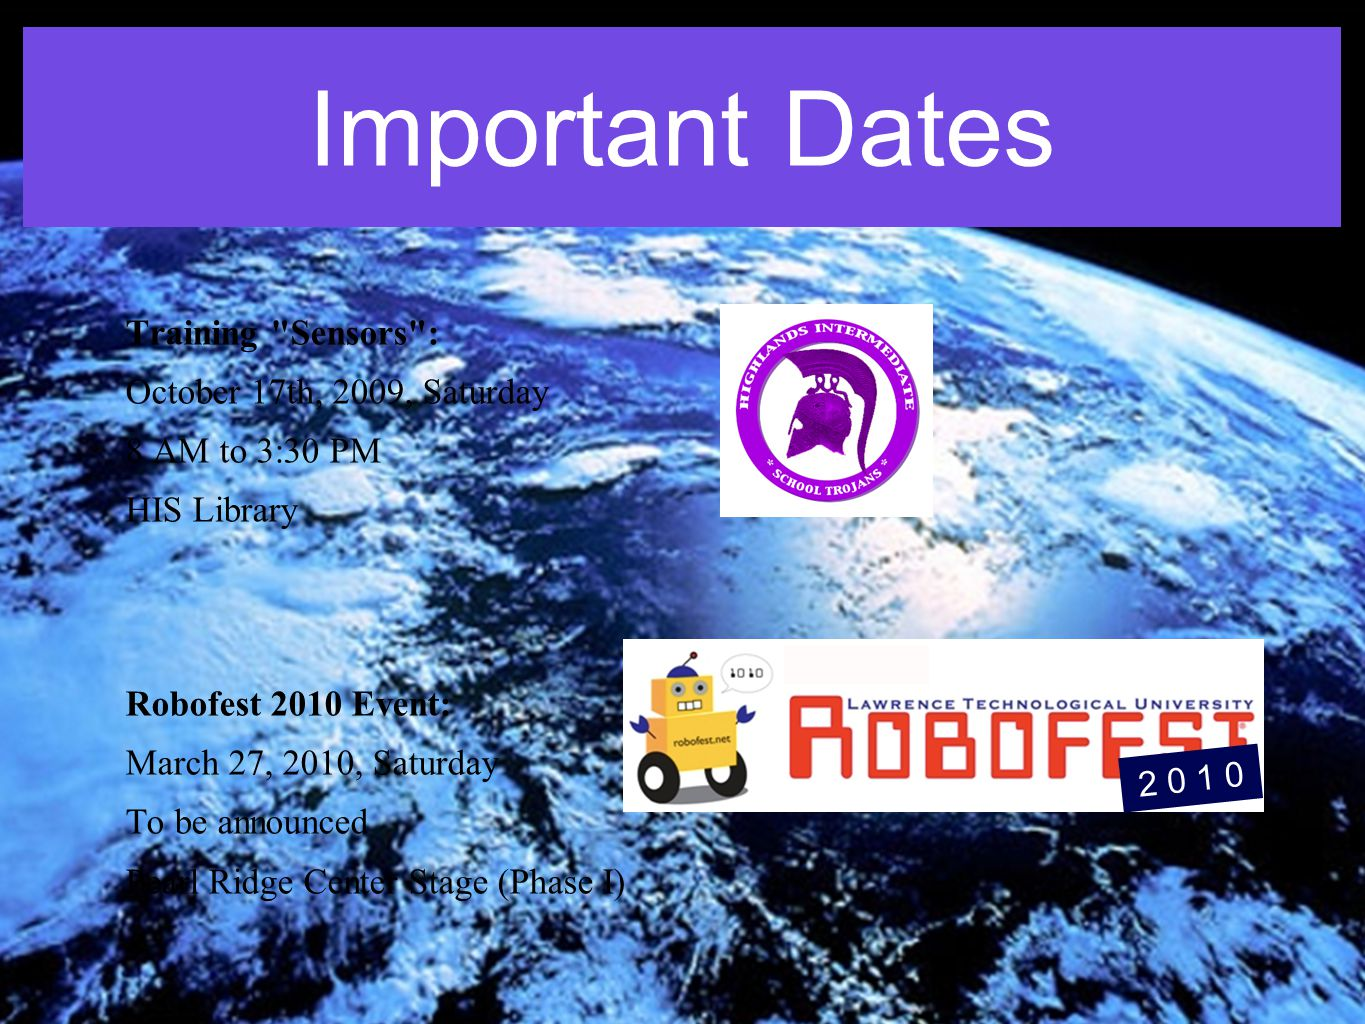 Important Dates Training Sensors : October 17th, 2009, Saturday 8 AM to 3:30 PM HIS Library Robofest 2010 Event: March 27, 2010, Saturday To be announced Pearl Ridge Center Stage (Phase I) 2 0 1 0